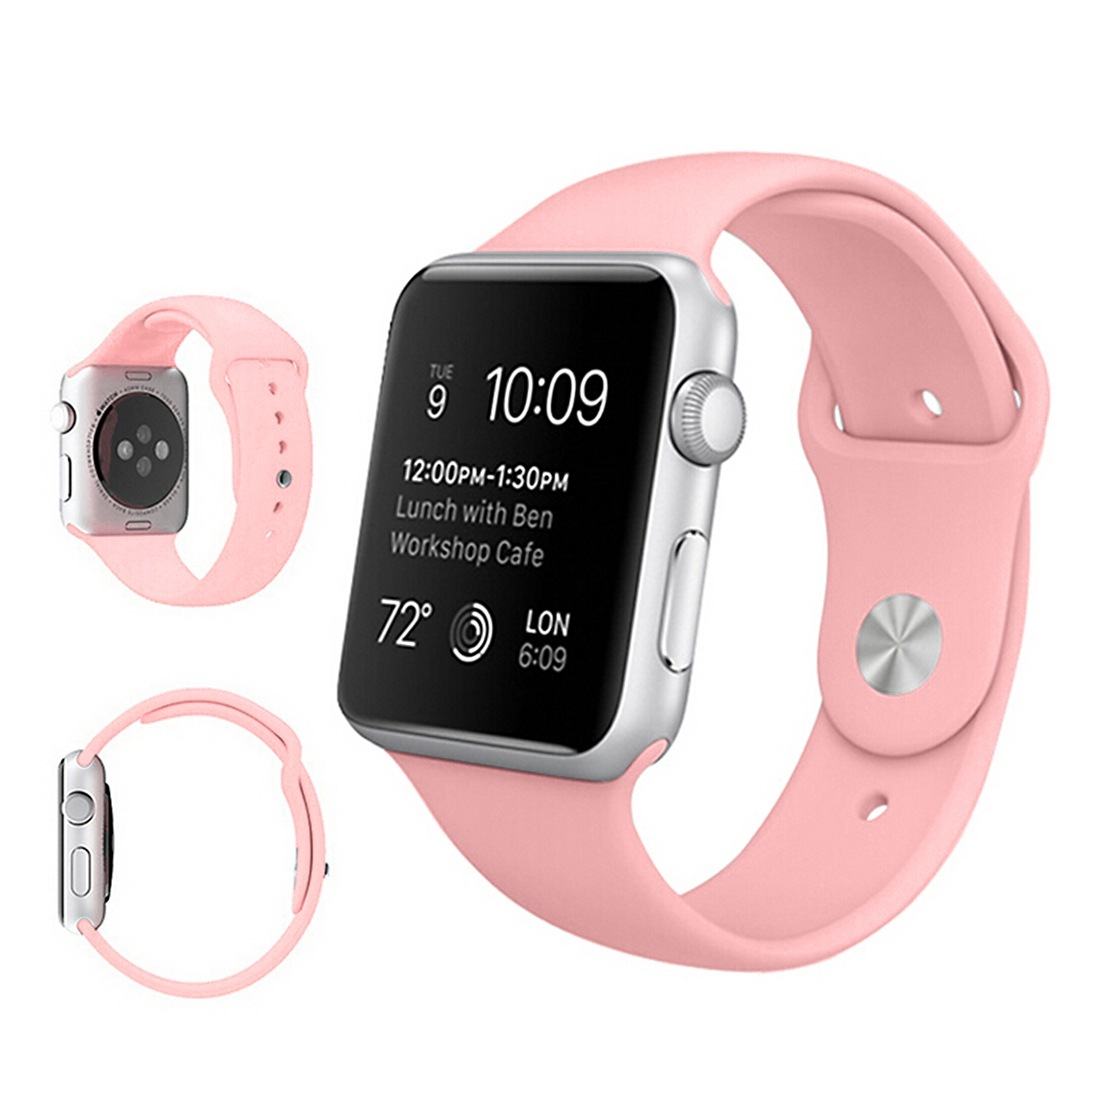 Armband för Apple Watch 42mm - Gummi